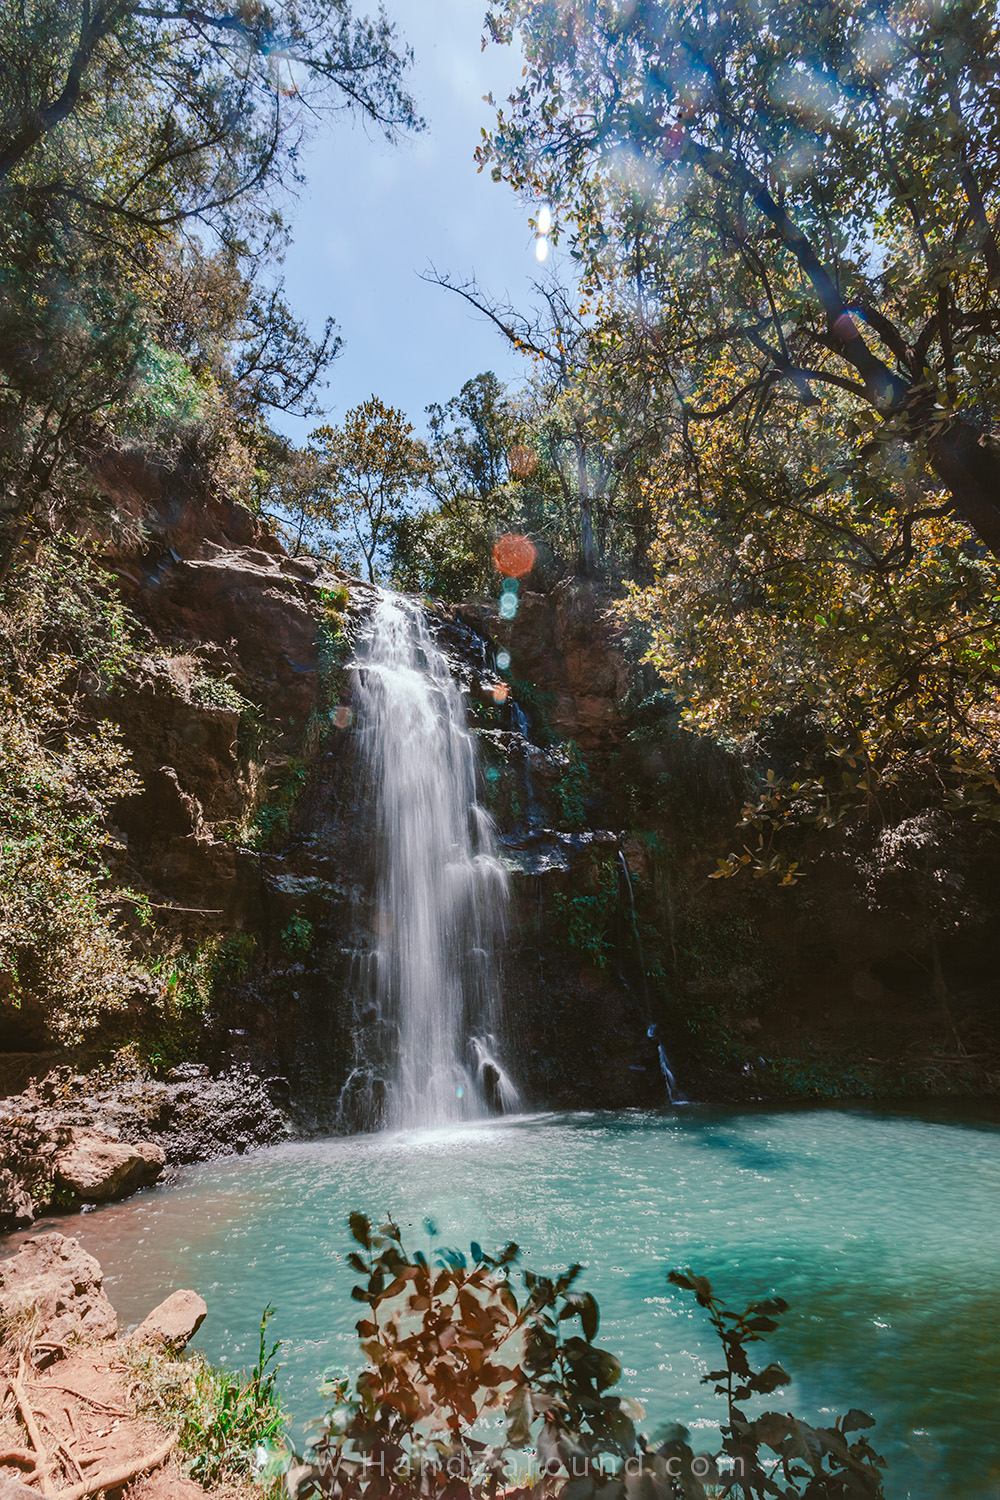 001_HANDZAROUND_NGARE_NDARE_FOREST_WATERFALL_NRT_THE_BIG_NORTH_LAIKIPIA_KENYA_AFRICA.jpg